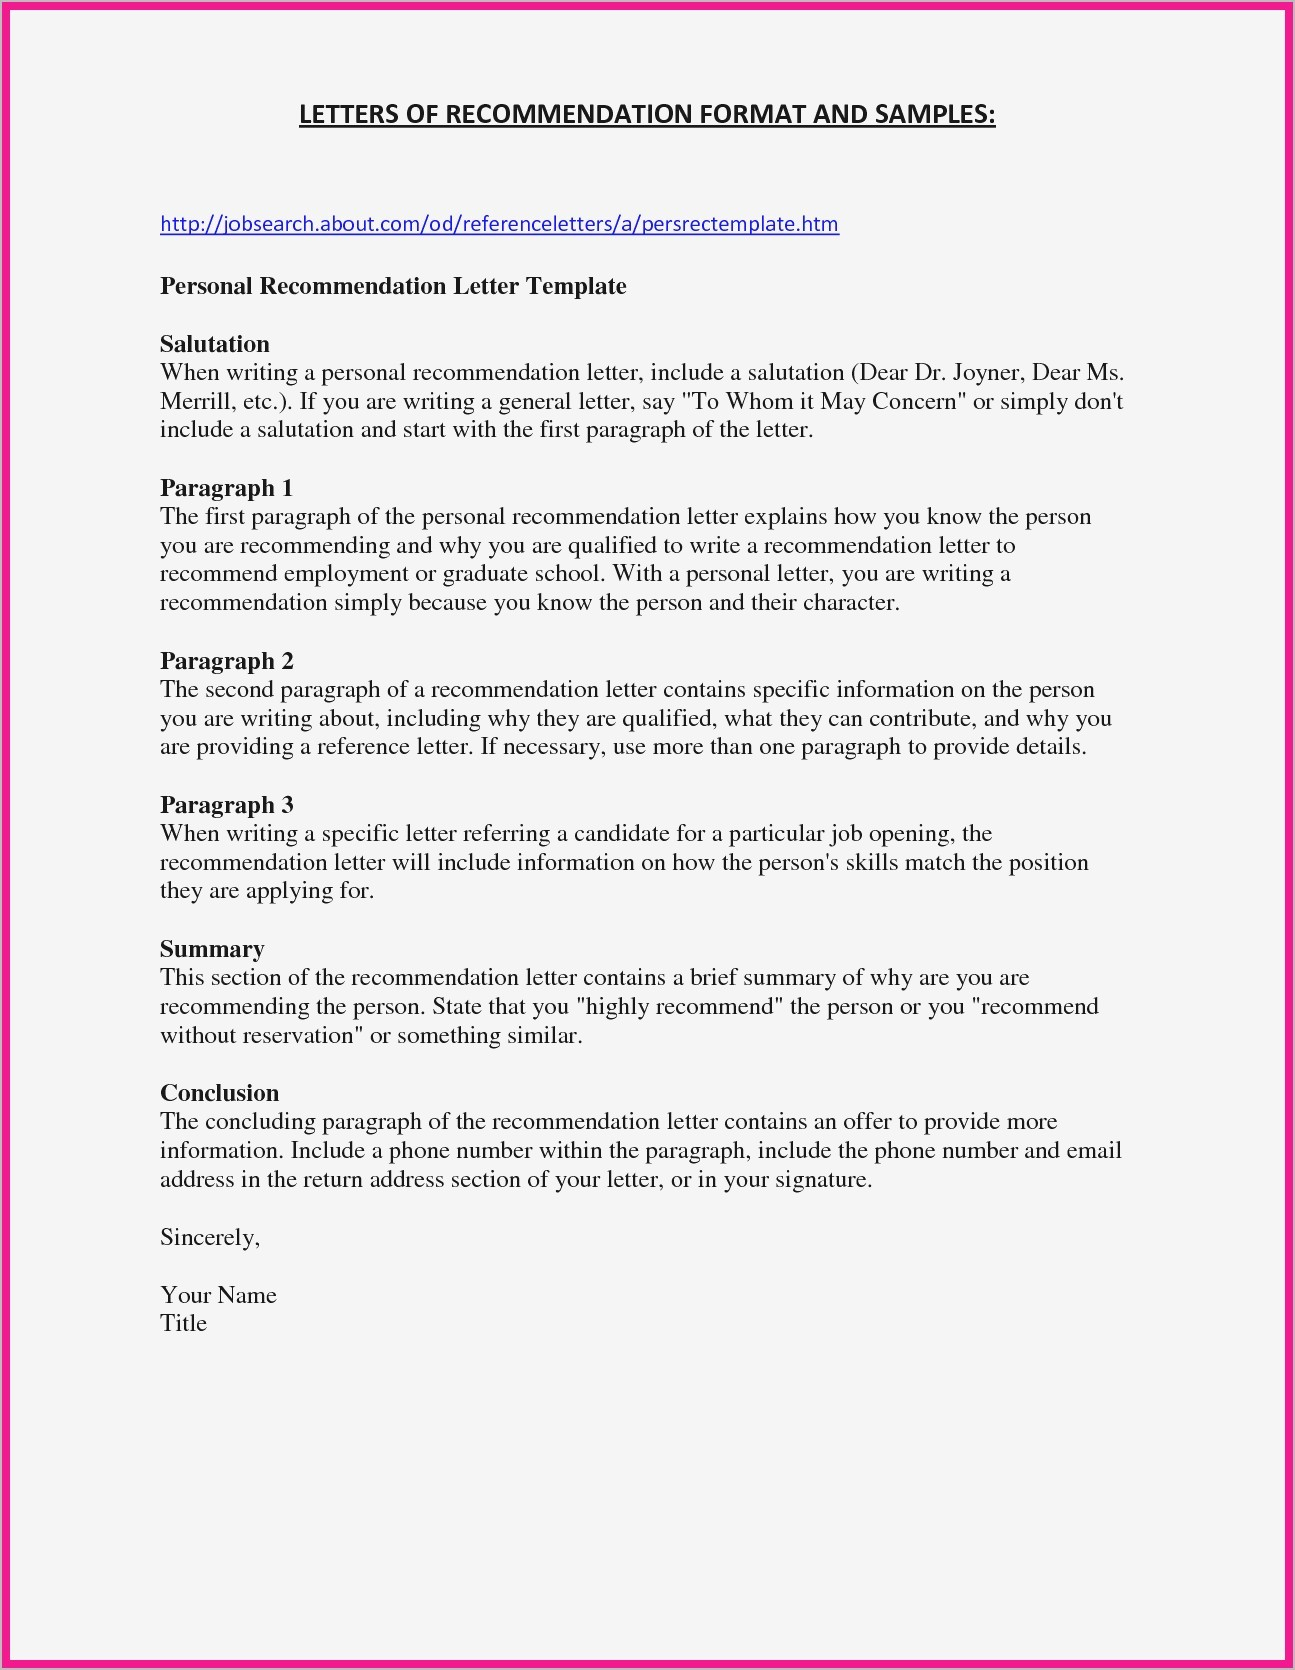 Personal Recommendation Letter Template - Sample Re Mendation Letter for Job Refrence Personal Reference